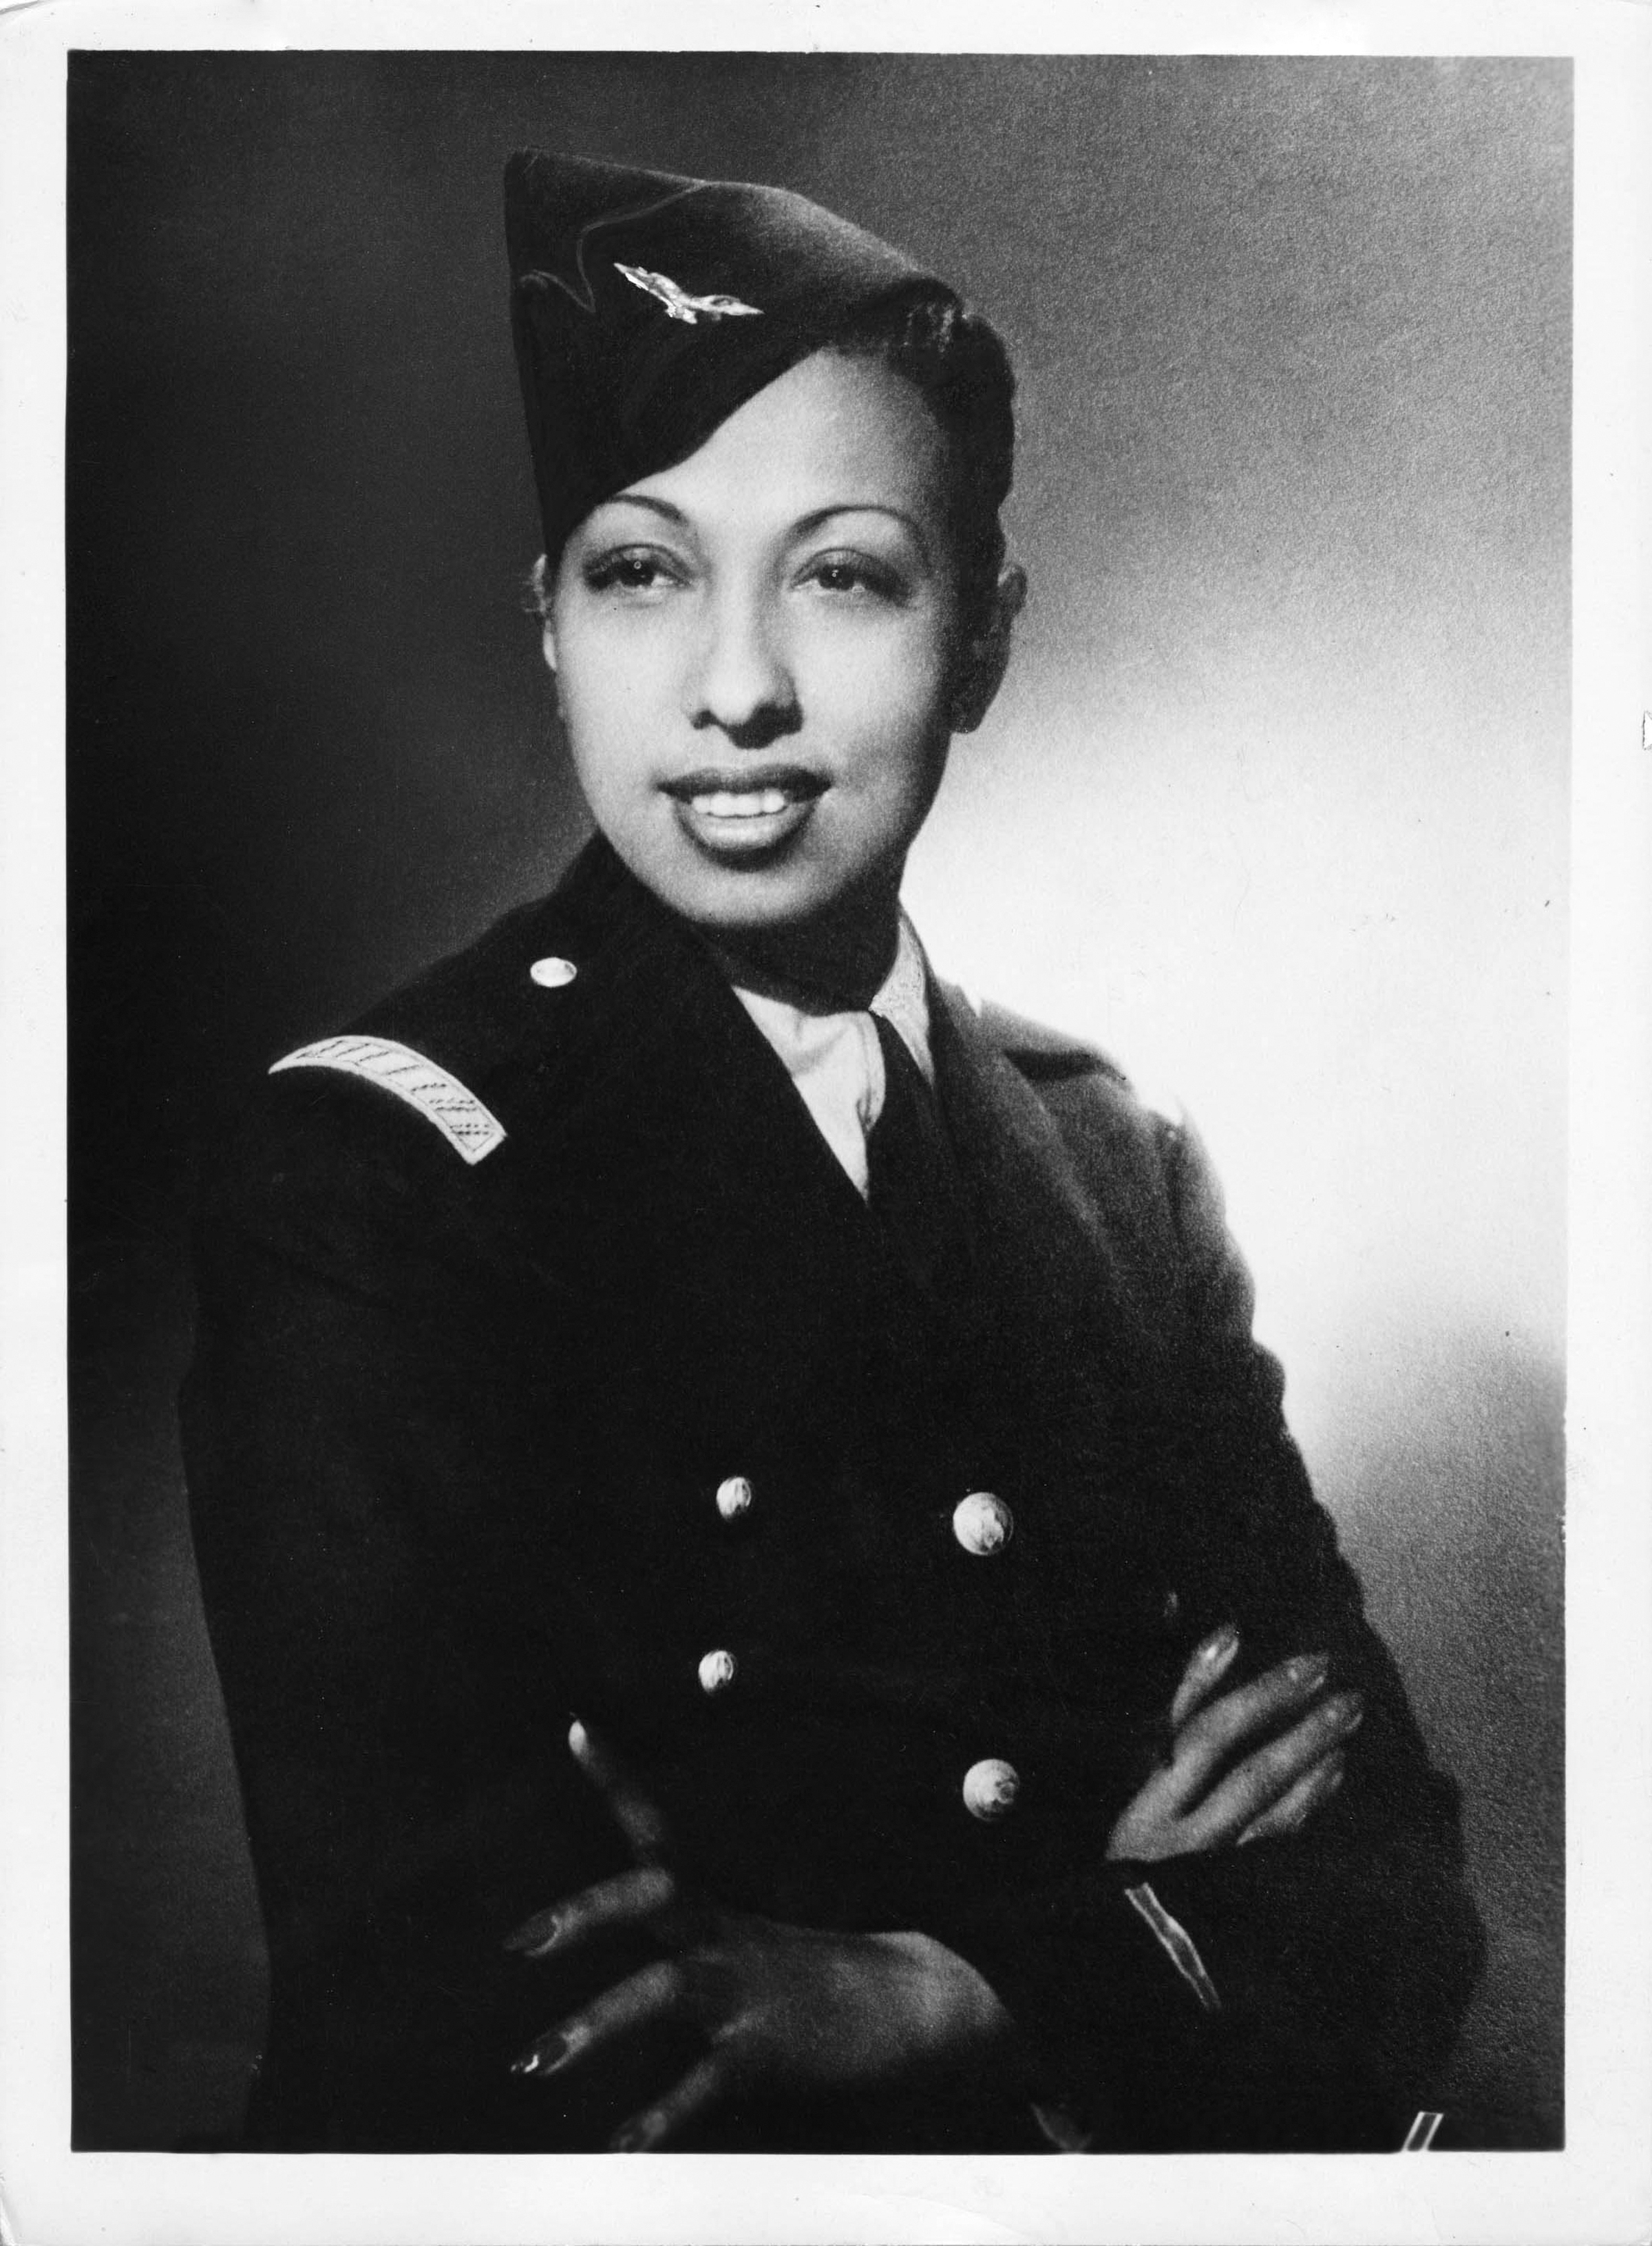 the josephine baker story essay Join now to read essay the josephine baker story josephine baker was born freda josephine carson in st louis, missouri, on june 3, 1906 to washerwoman, carrie mcdonald, and vaudeville drummer, eddie carson.